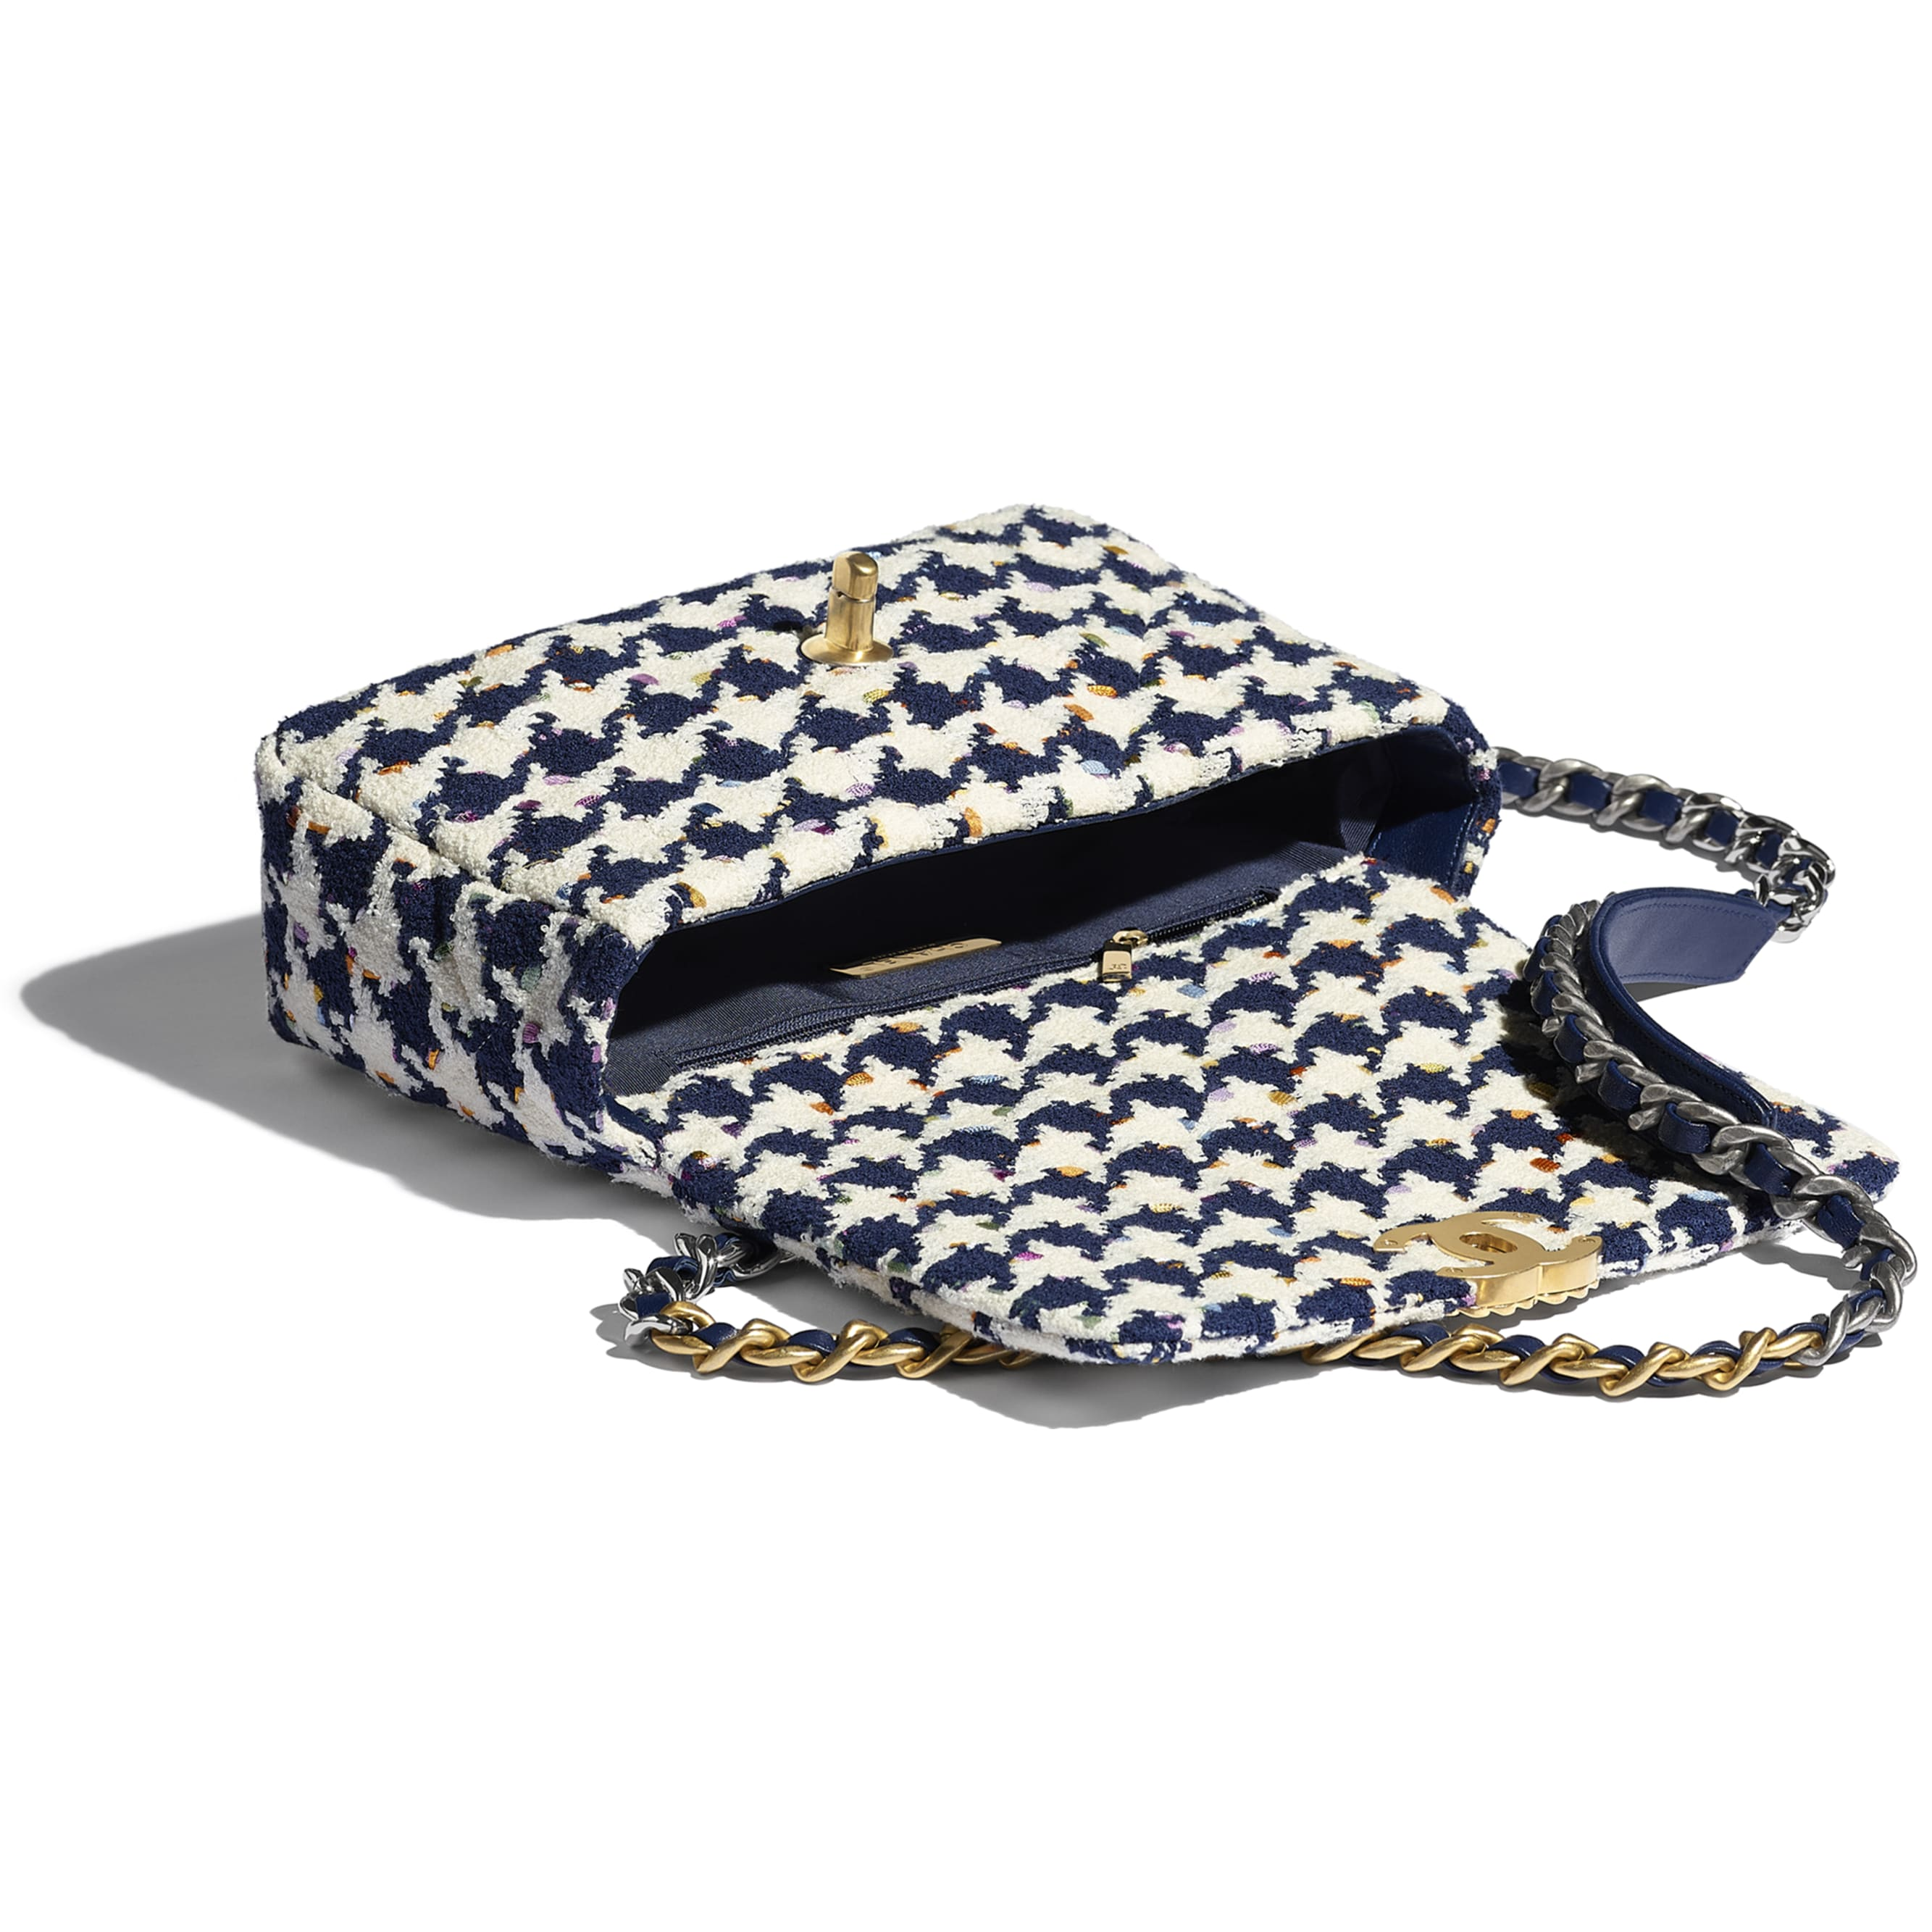 CHANEL 19 Flap Bag - Ecru, Navy Blue & Multicolour - Tweed, Gold-Tone, Silver-Tone & Ruthenium-Finish Metal - CHANEL - Other view - see standard sized version